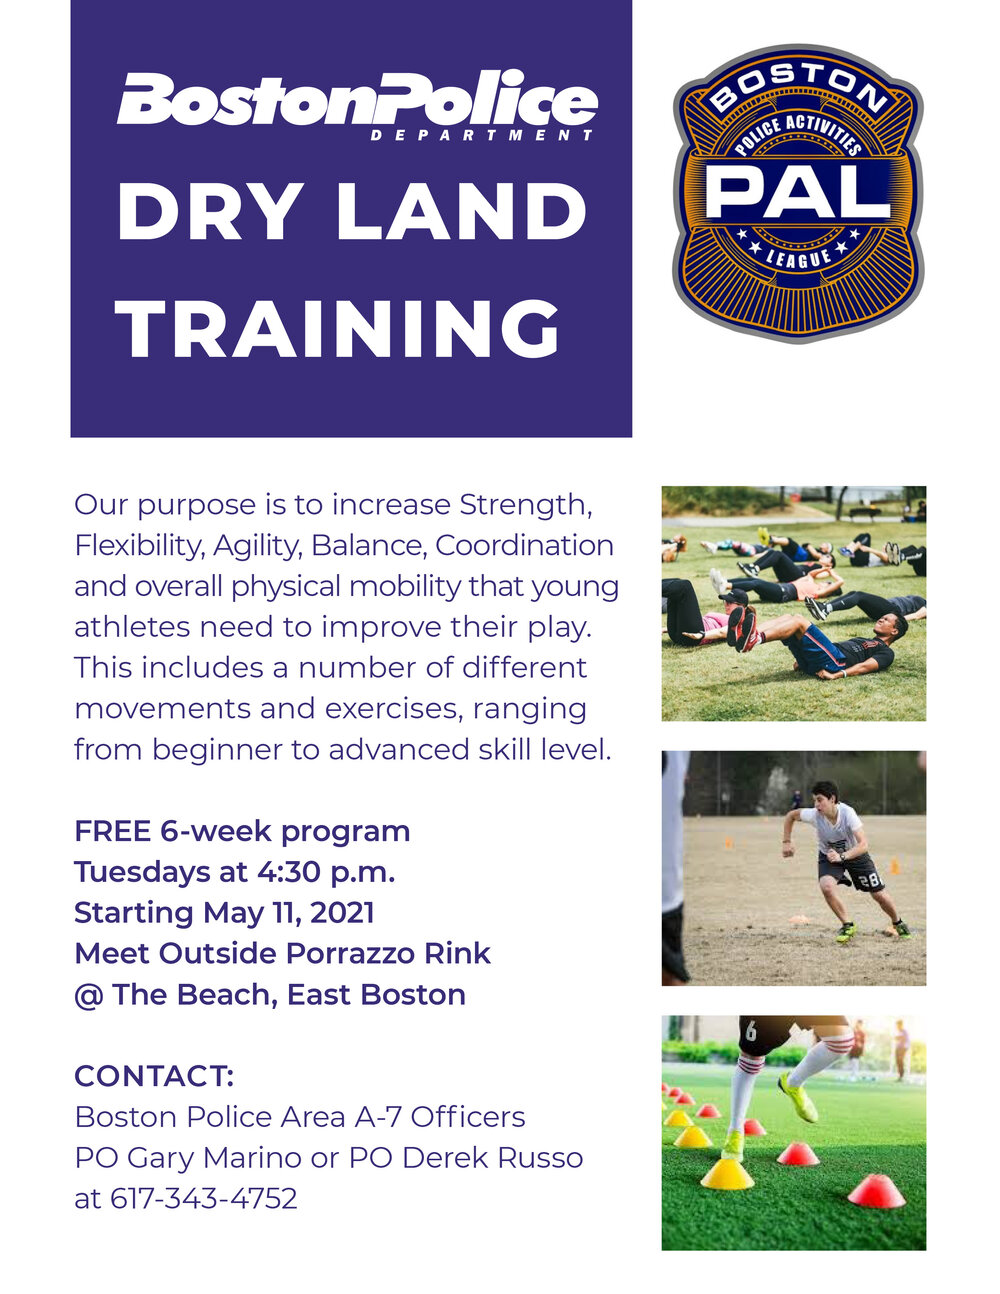 UPDATE: East Boston Dry Land Training has been Extended to July